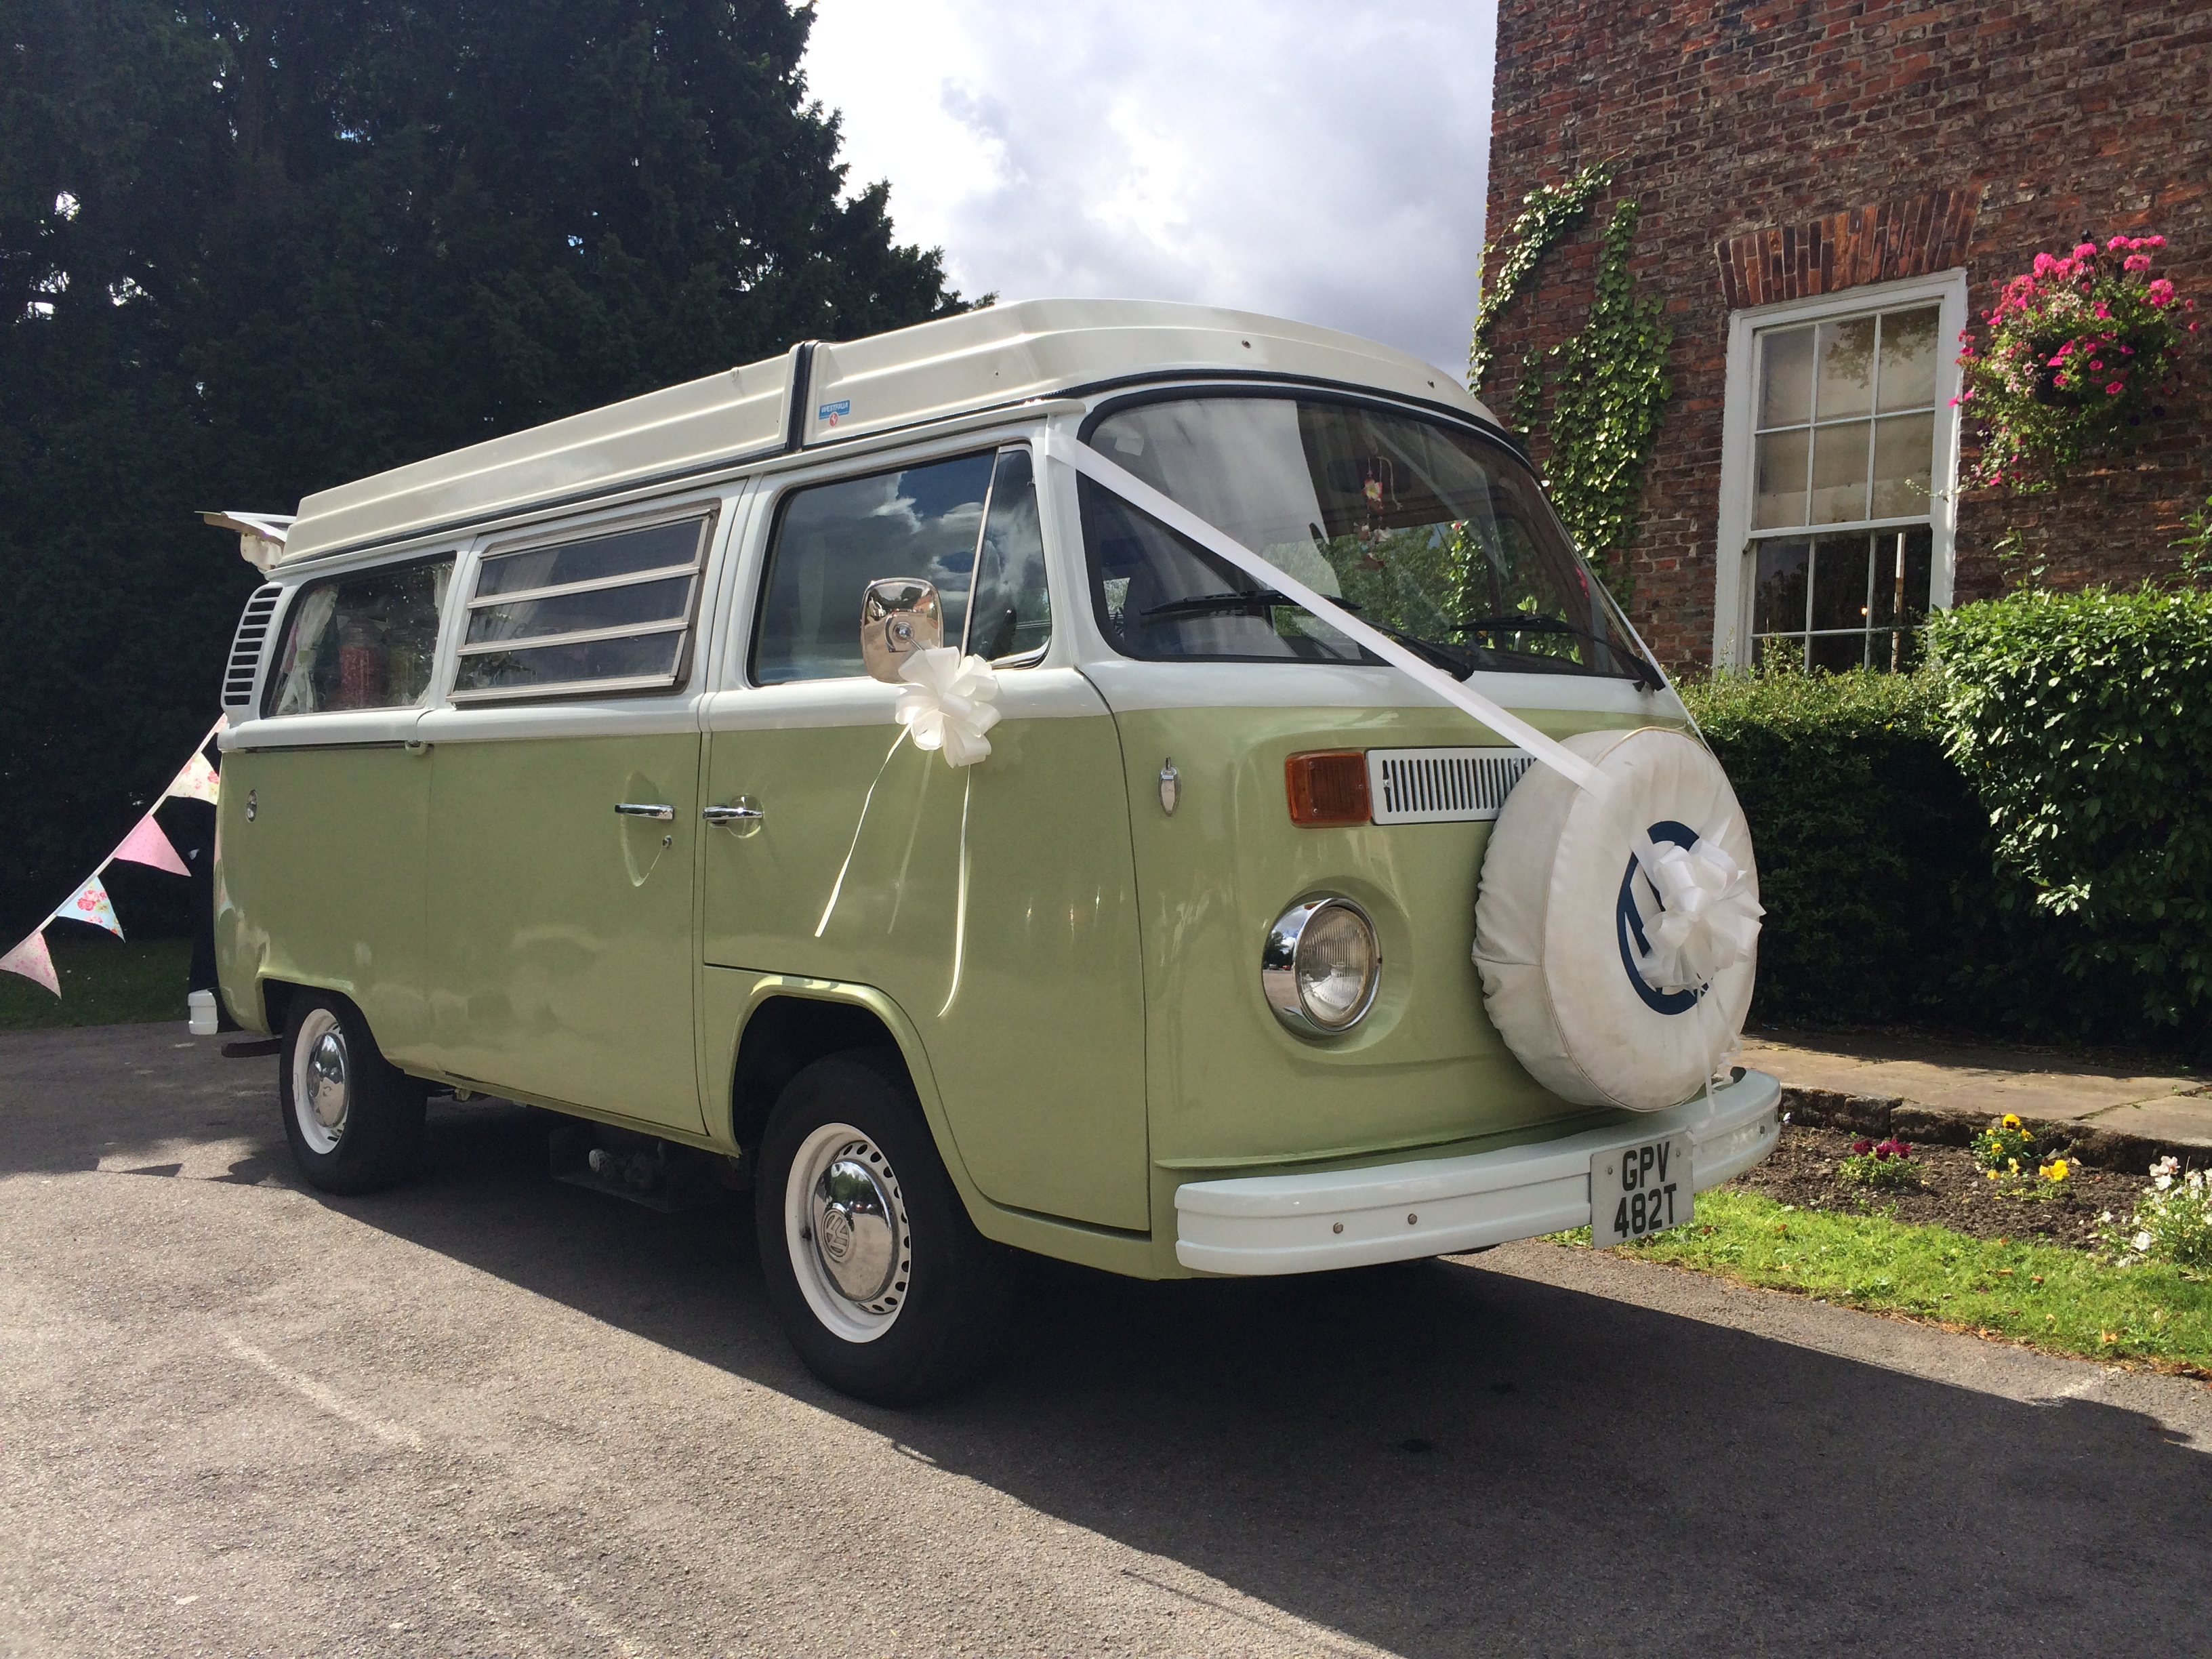 vw camper based in Darlington